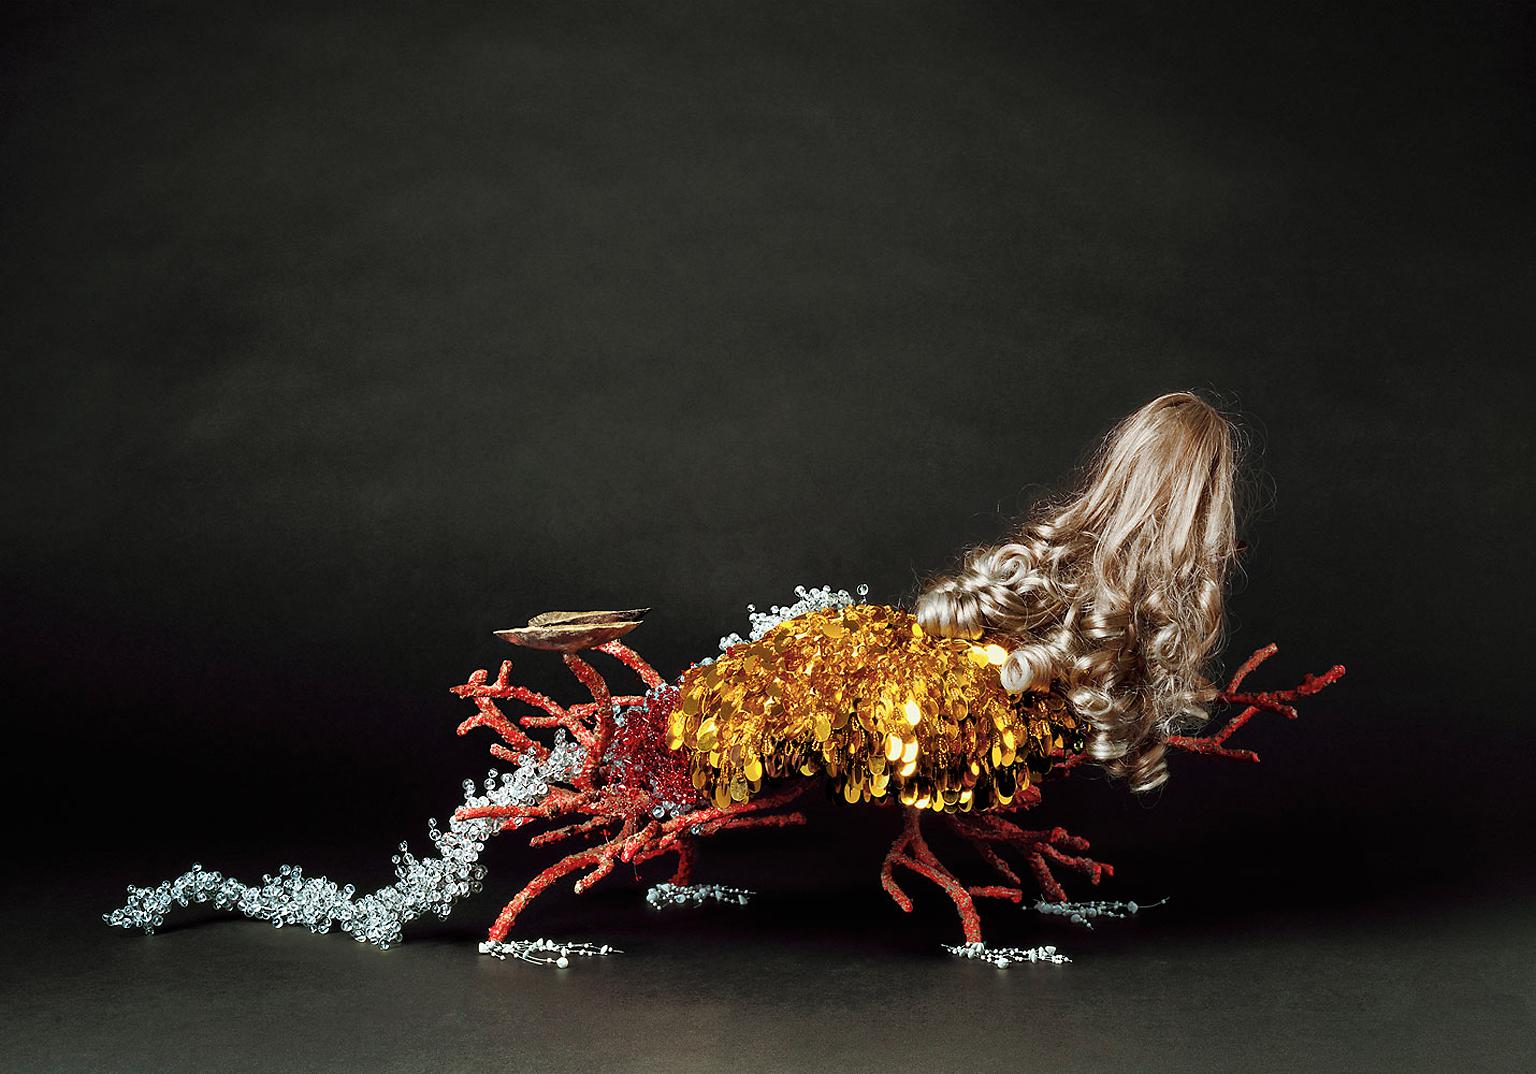 Creature I - fantastical creatures made of found objects and organic materials